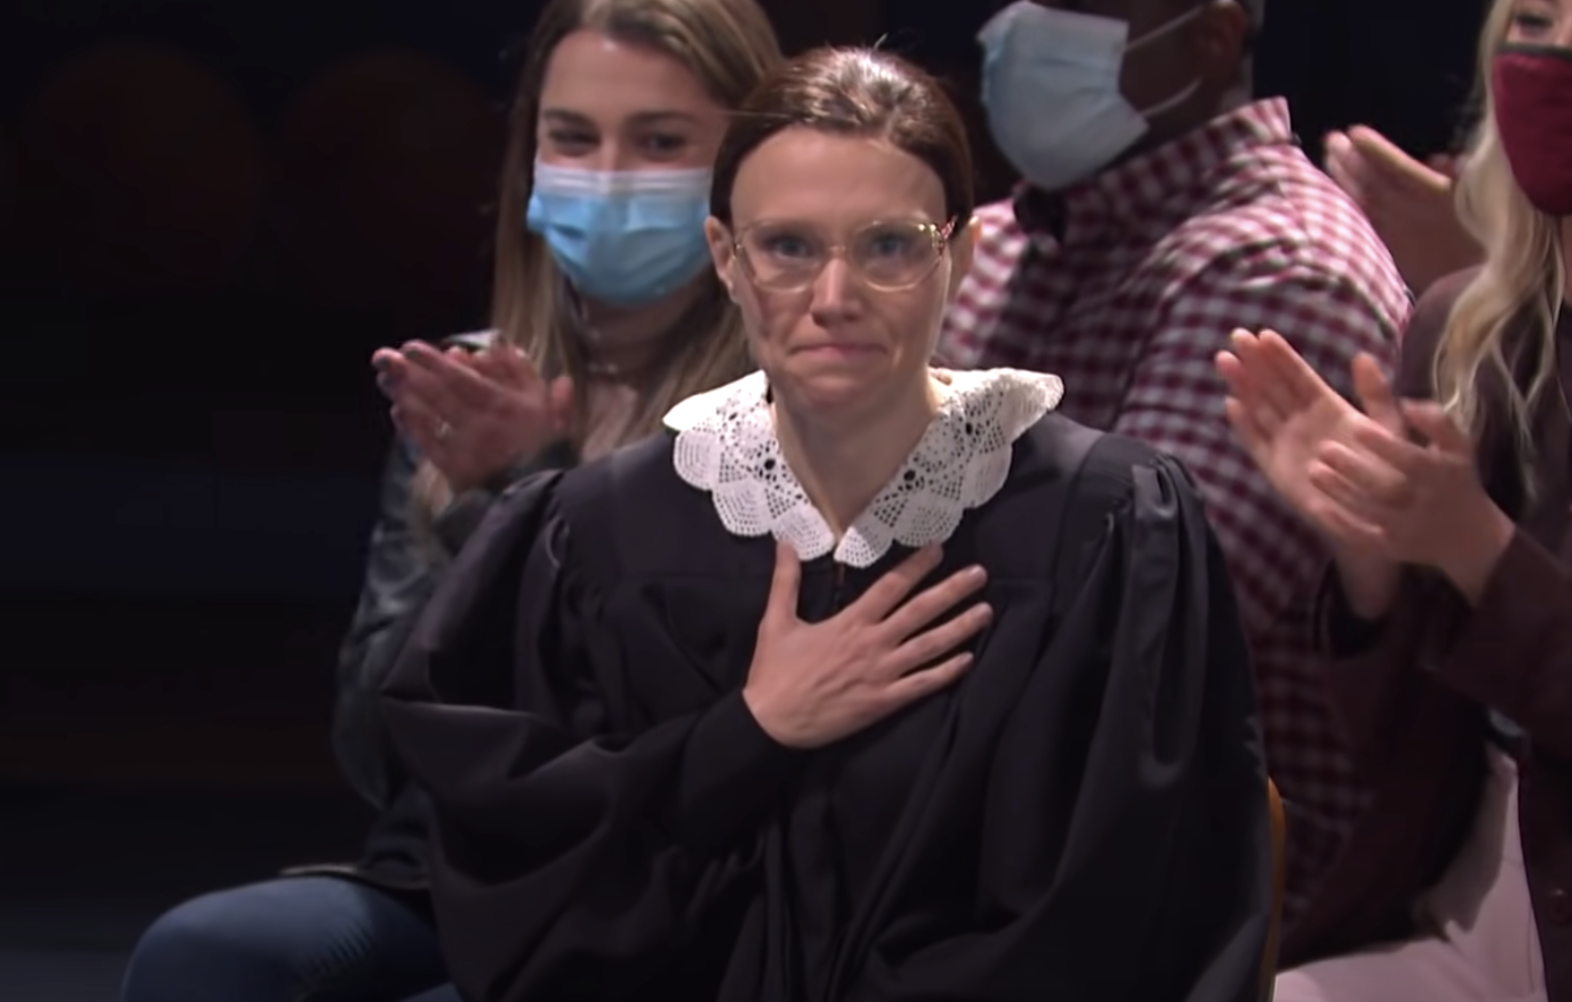 Kate McKinnon dressed as a justice, with her right hand on her heart